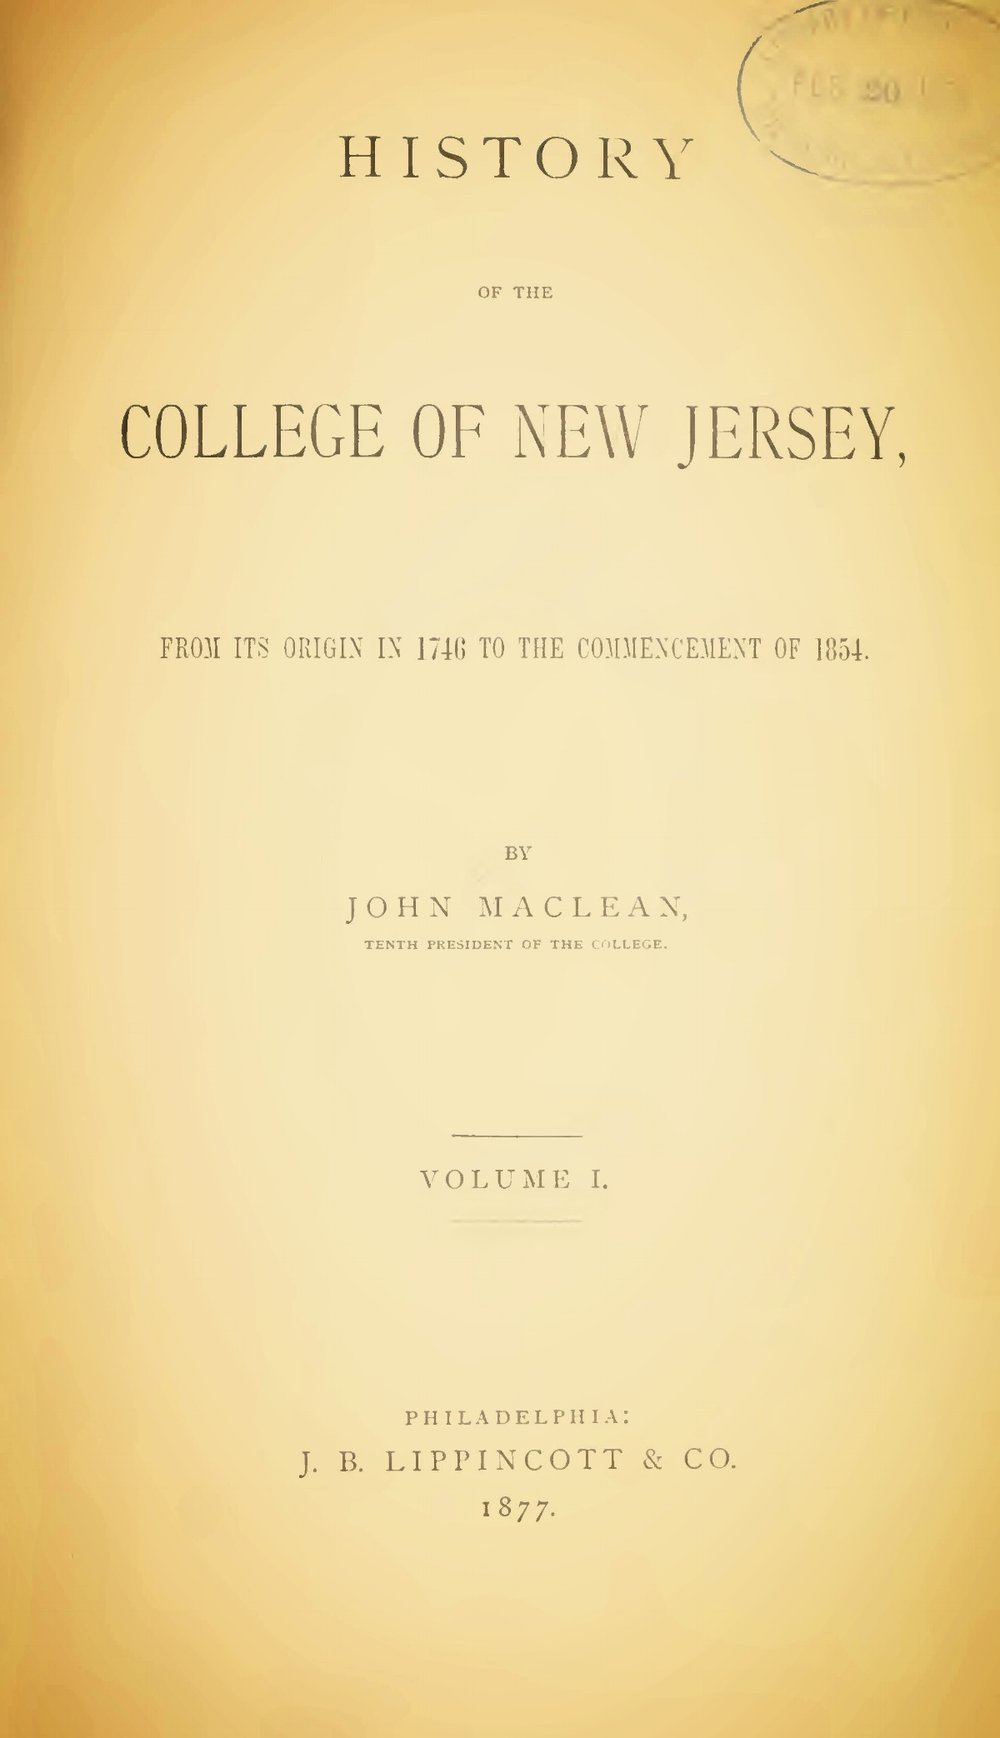 Maclean, John, Jr., History of the College of New Jersey, Vol. 1 Title Page.jpg